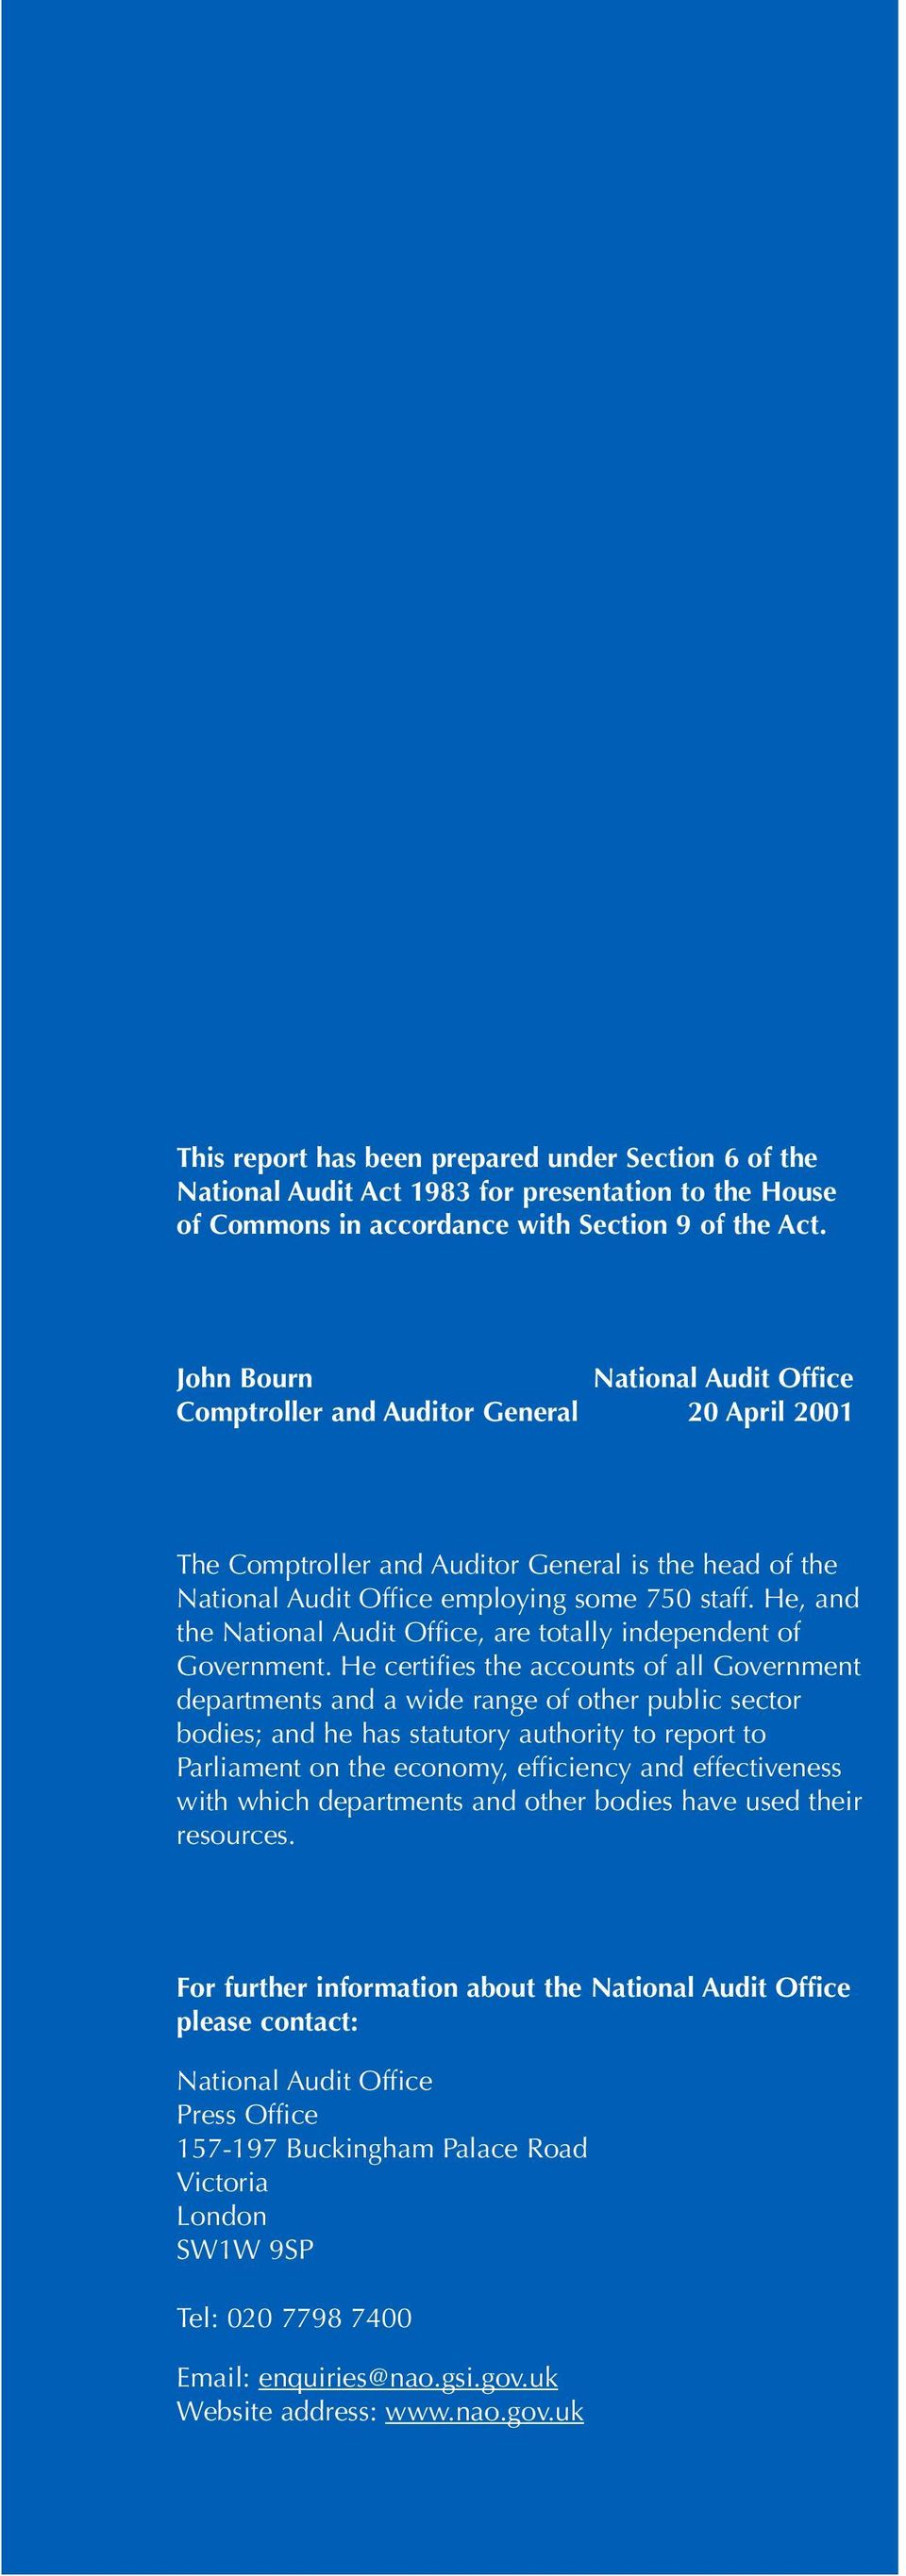 He, ad the Natioal Audit Office, are totally idepedet of Govermet.